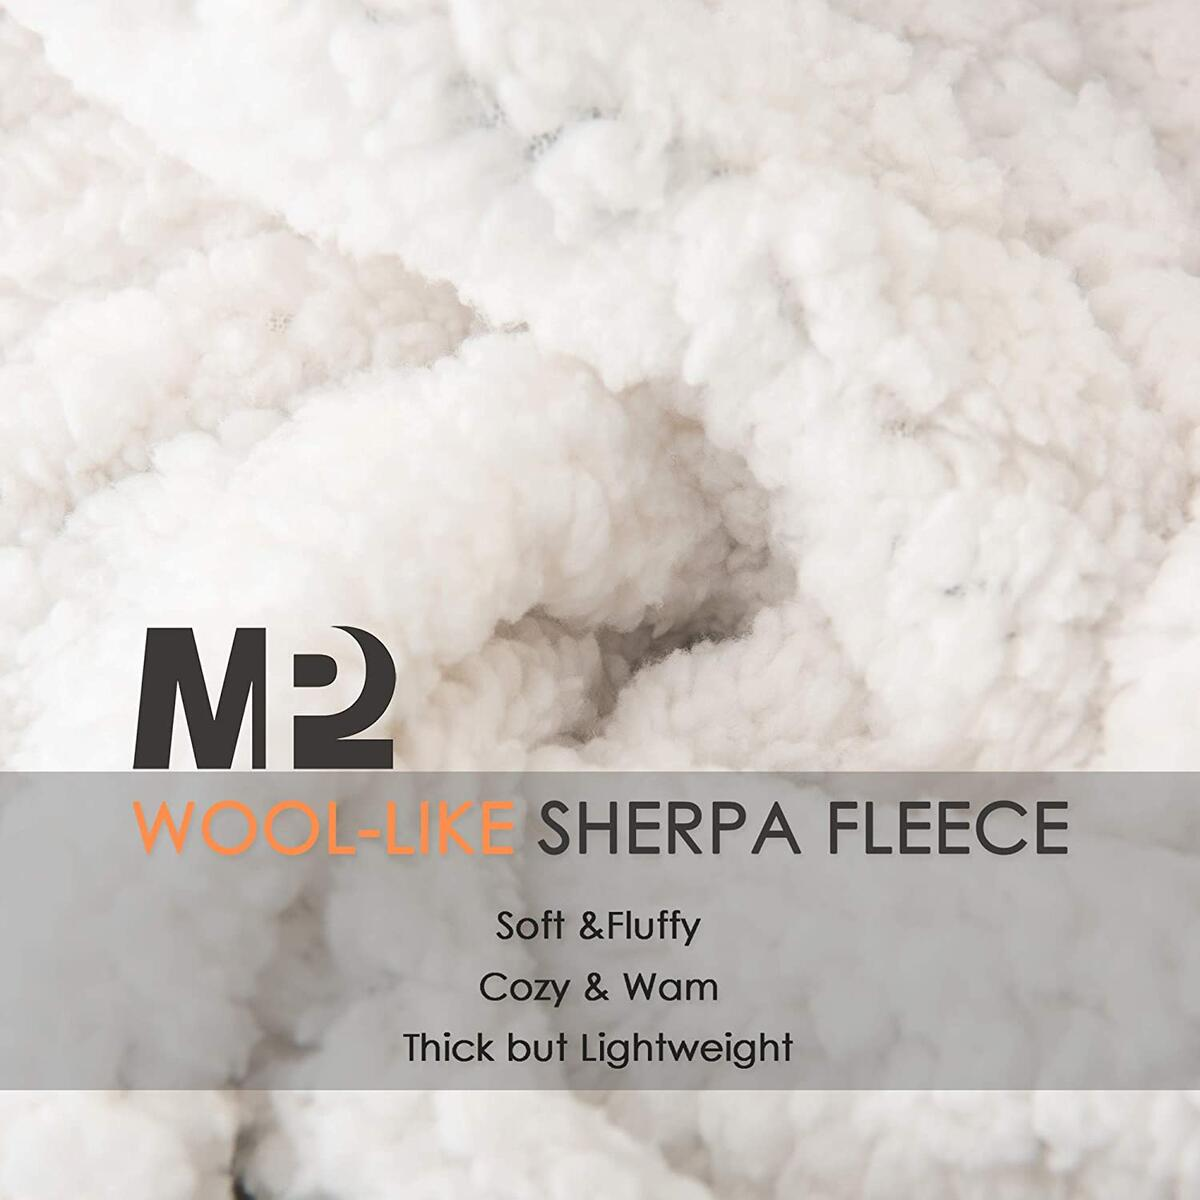 Fuzzy Fleece Plaid Sherpa Blanket Throw - Cozy Soft Plush Flannel Blanket for Sofa, Couch, Bed, Travel - 50x60 Inches, Black&Grey Plaid